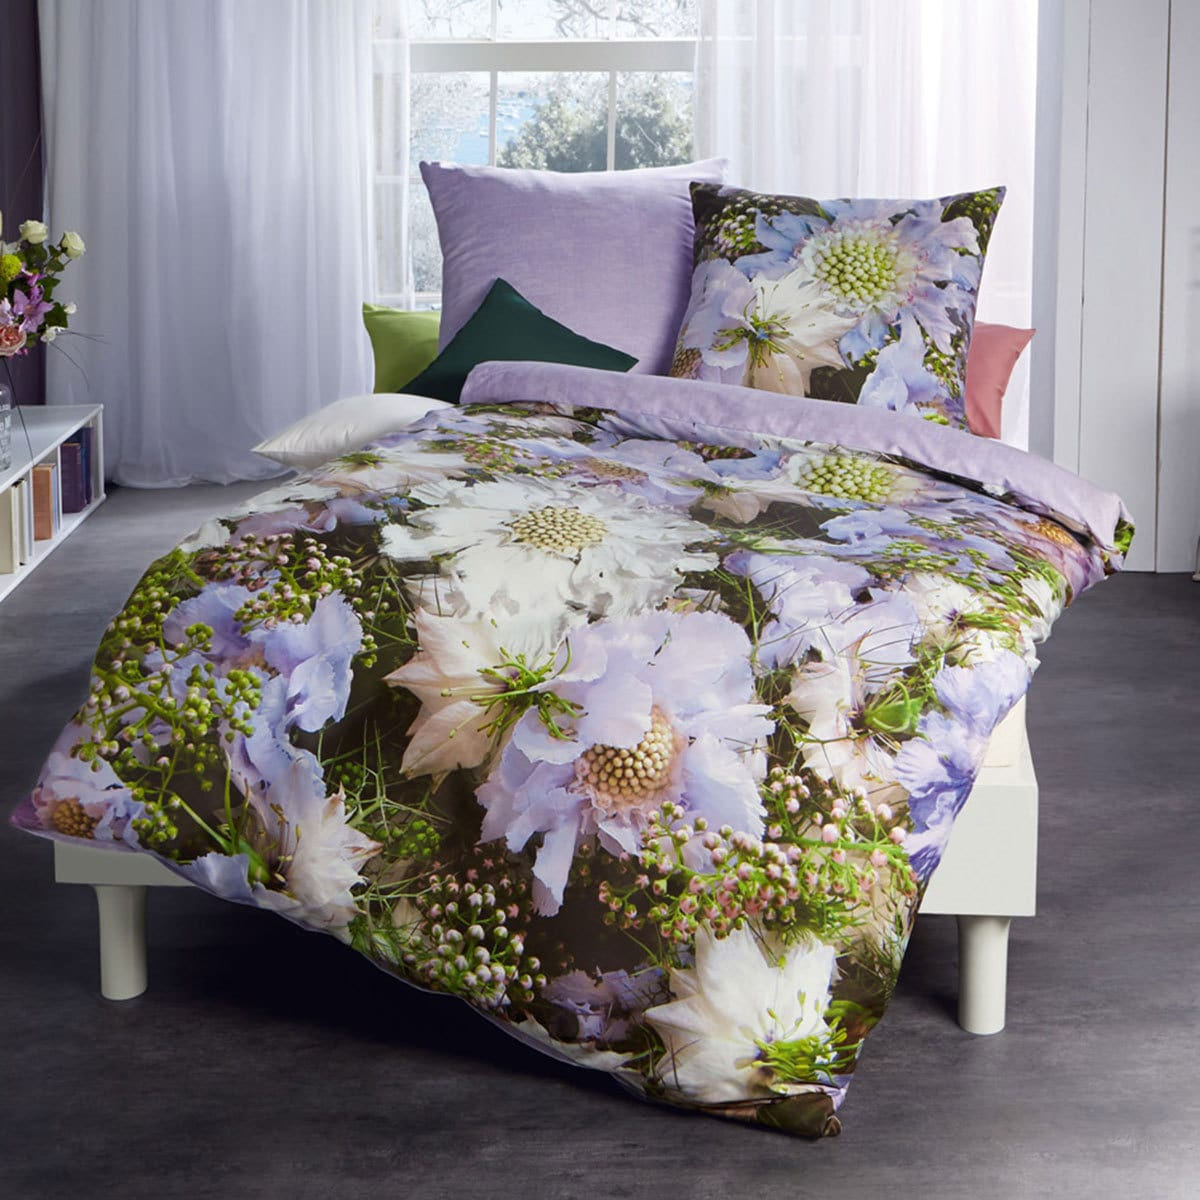 kaeppel mako satin wendebettw sche scabiosa g nstig online. Black Bedroom Furniture Sets. Home Design Ideas